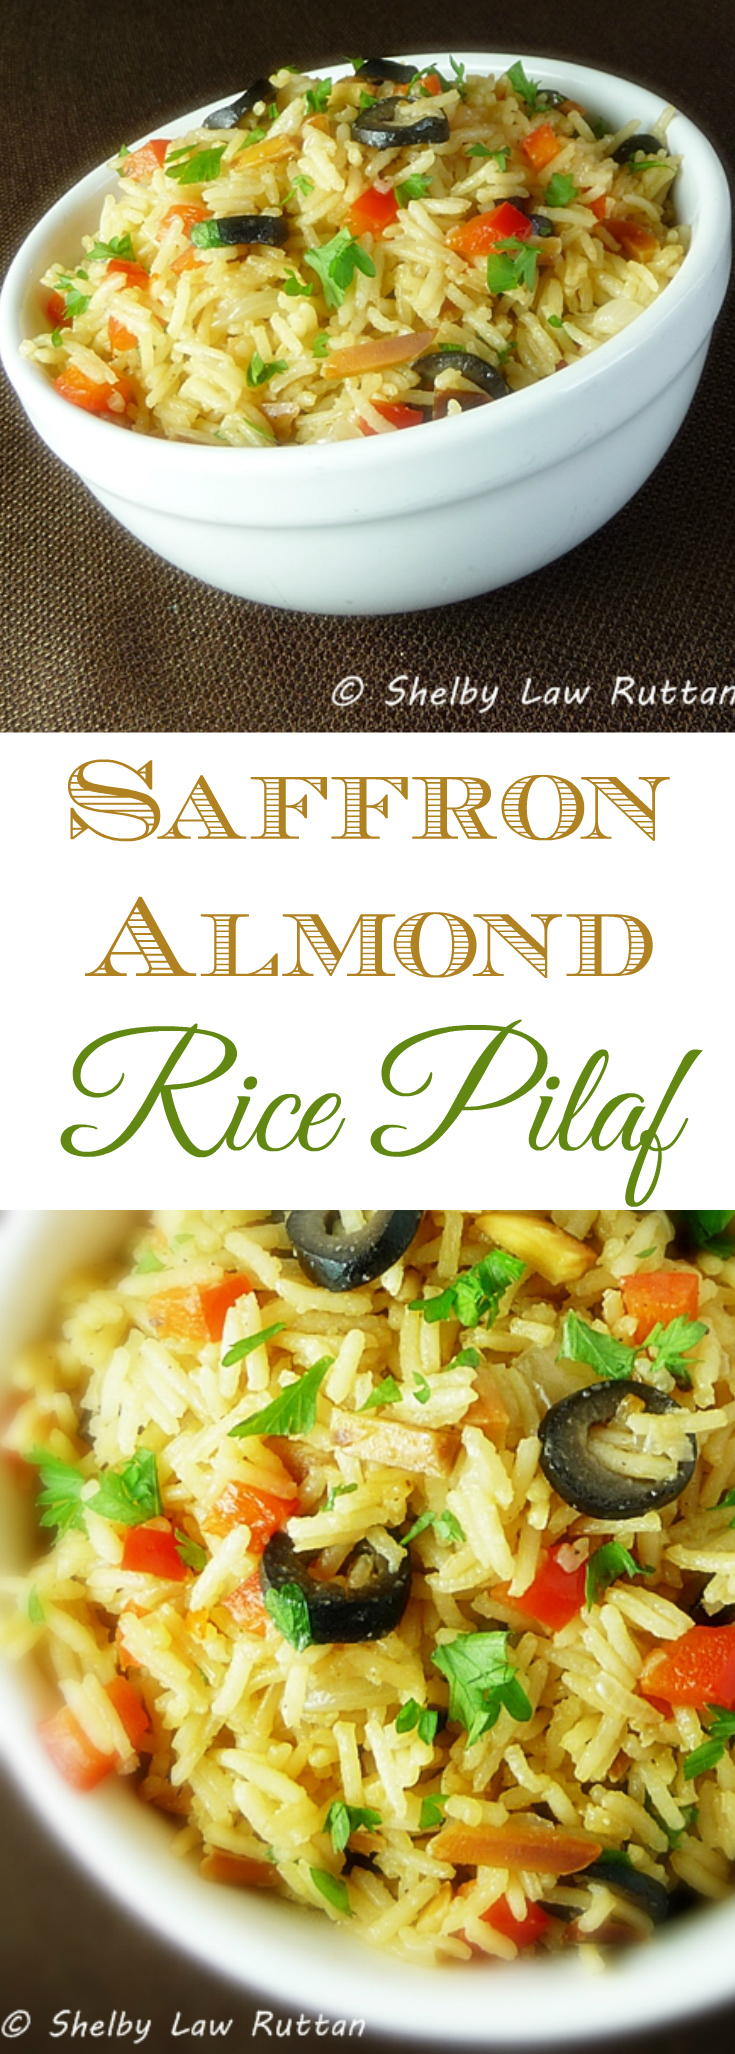 Saffron Almond Rice Pilaf